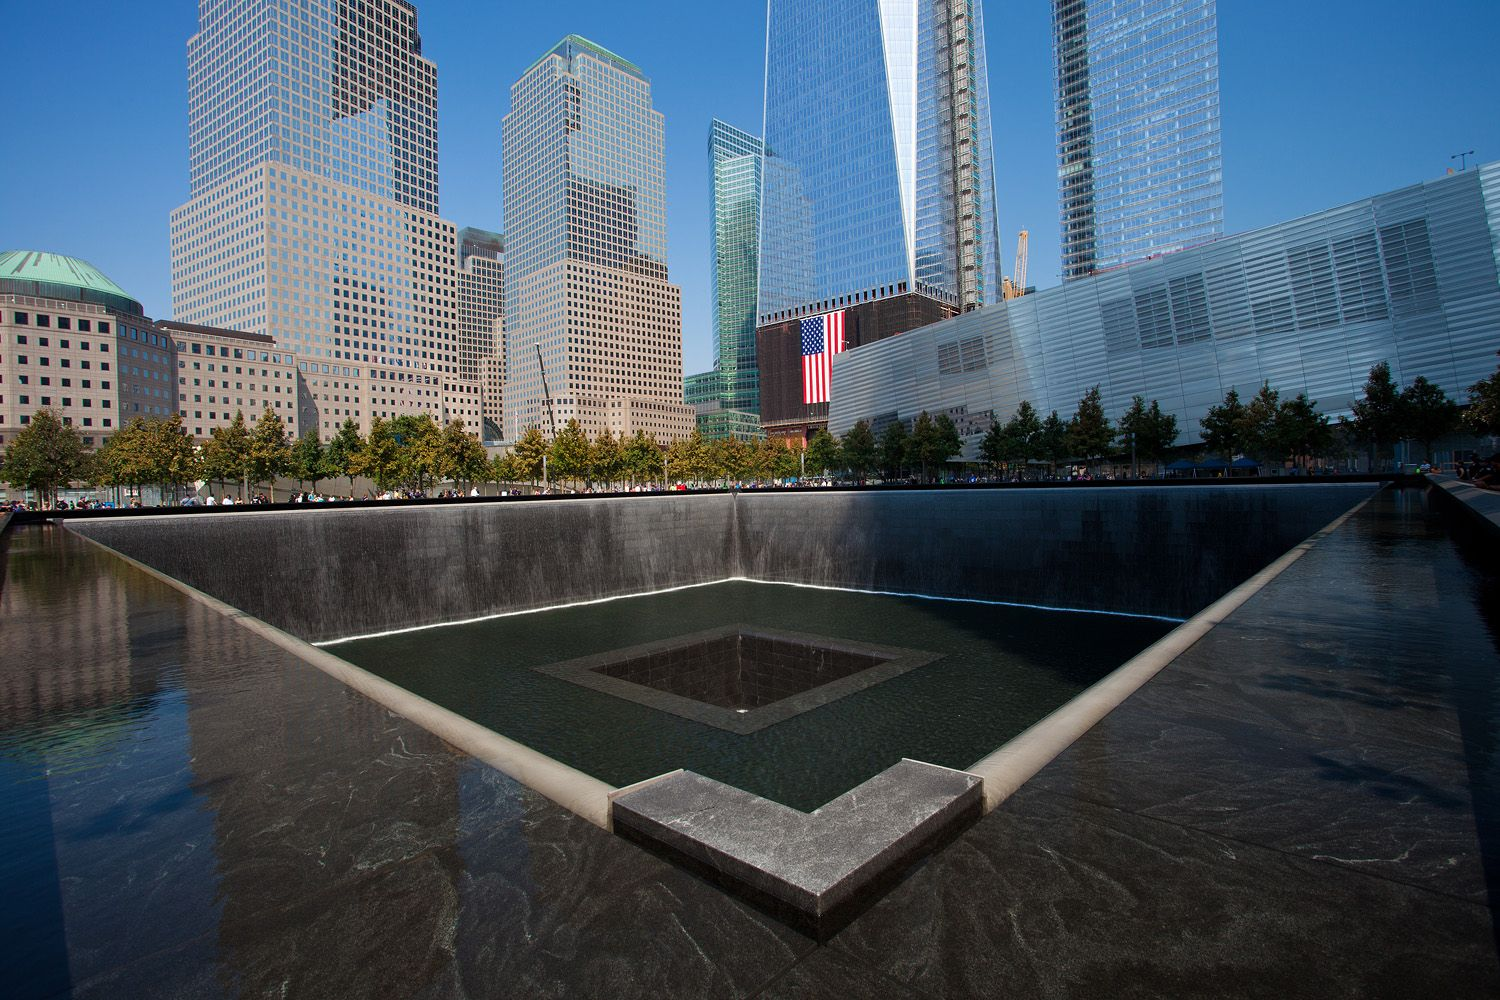 Ground Zero NYC. A visit here should be on every American's bucket list. We must never forget. #groundzeronyc